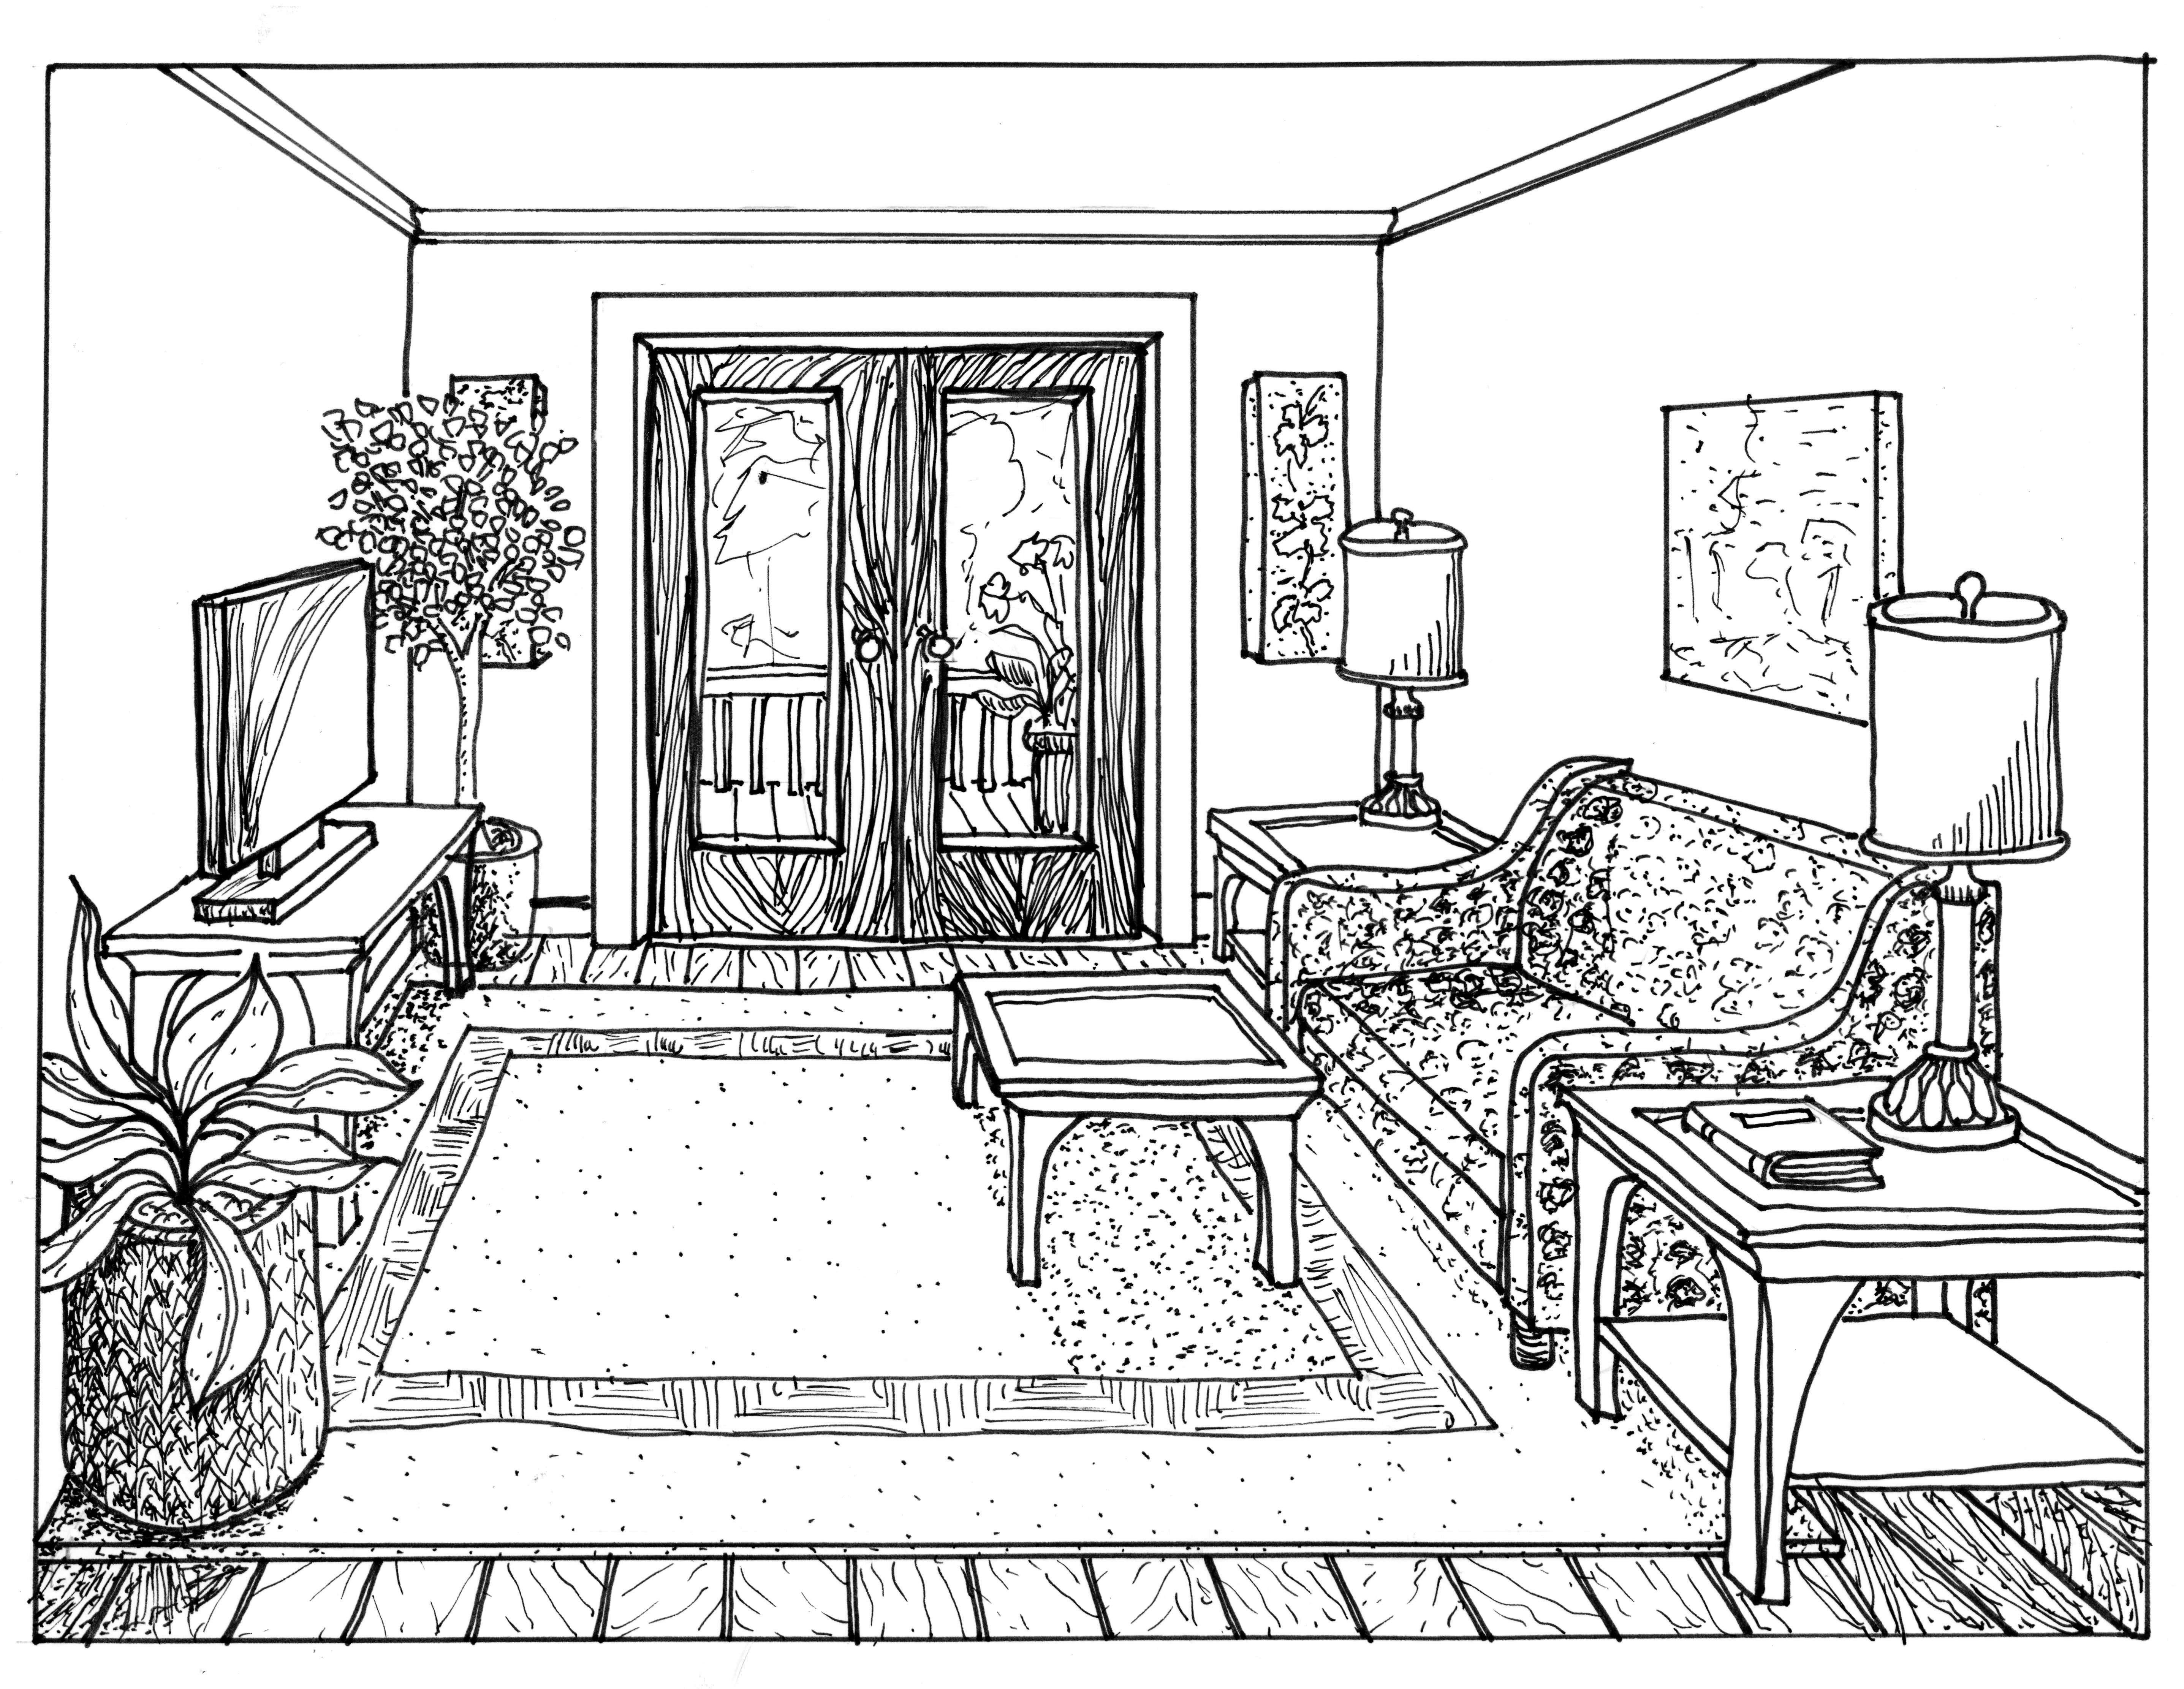 Floor Plan and One-Point Perspective Line Drawing